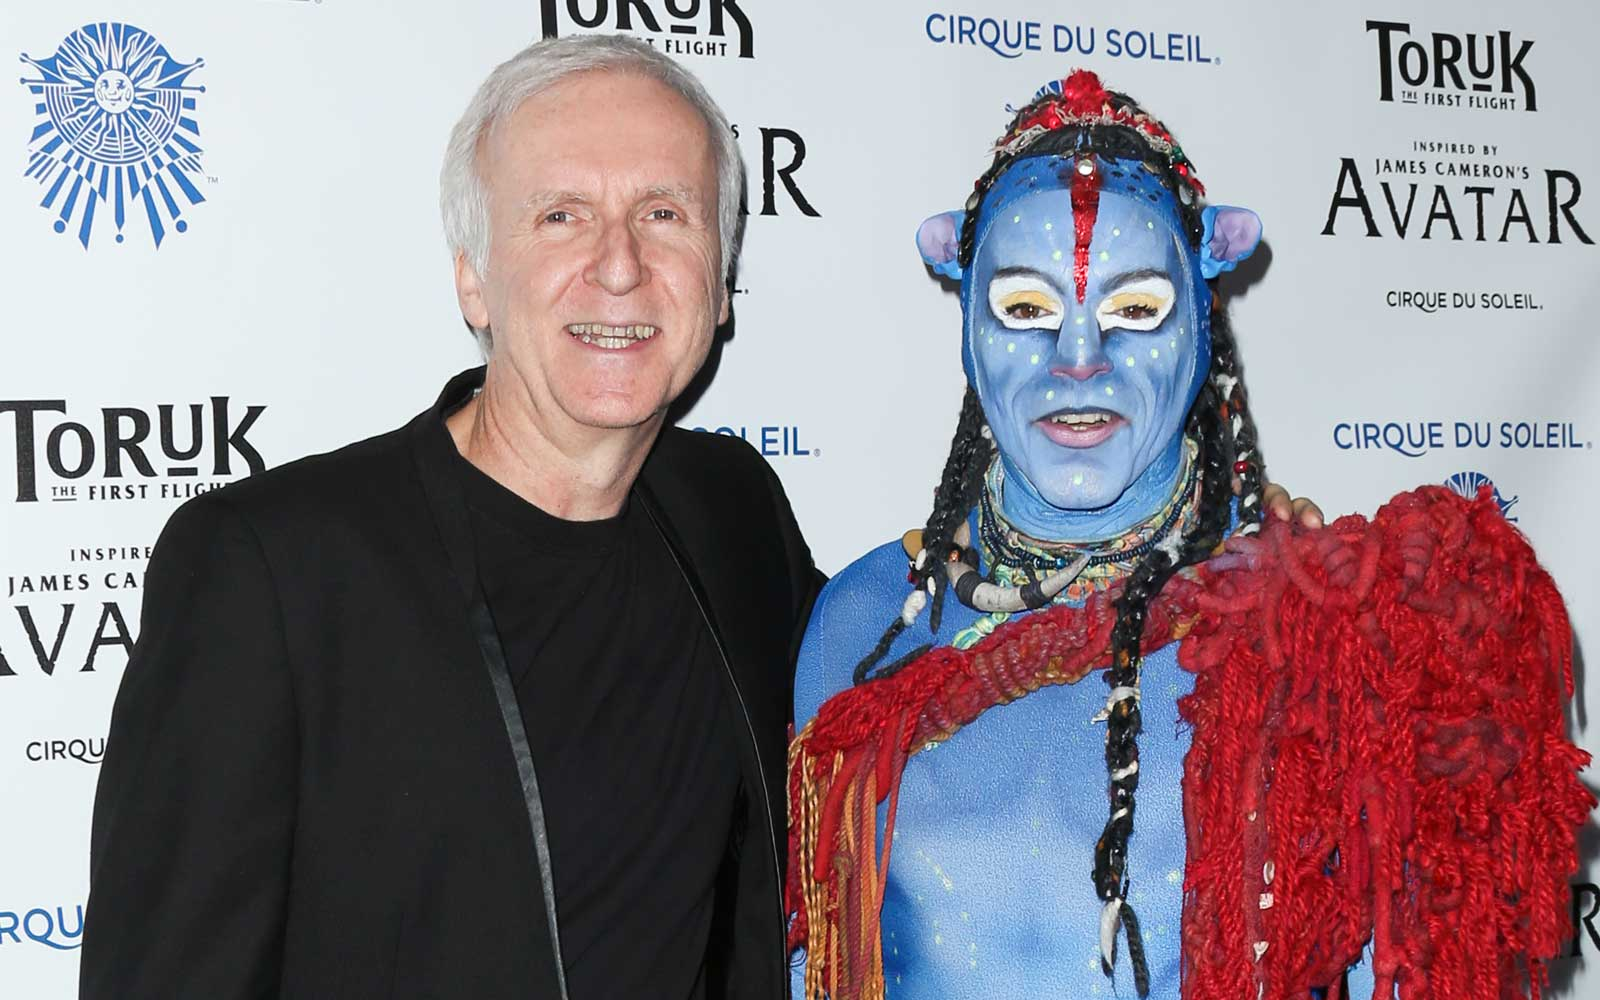 How James Cameron came up with the idea for 'Avatar' and the Pandora theme park